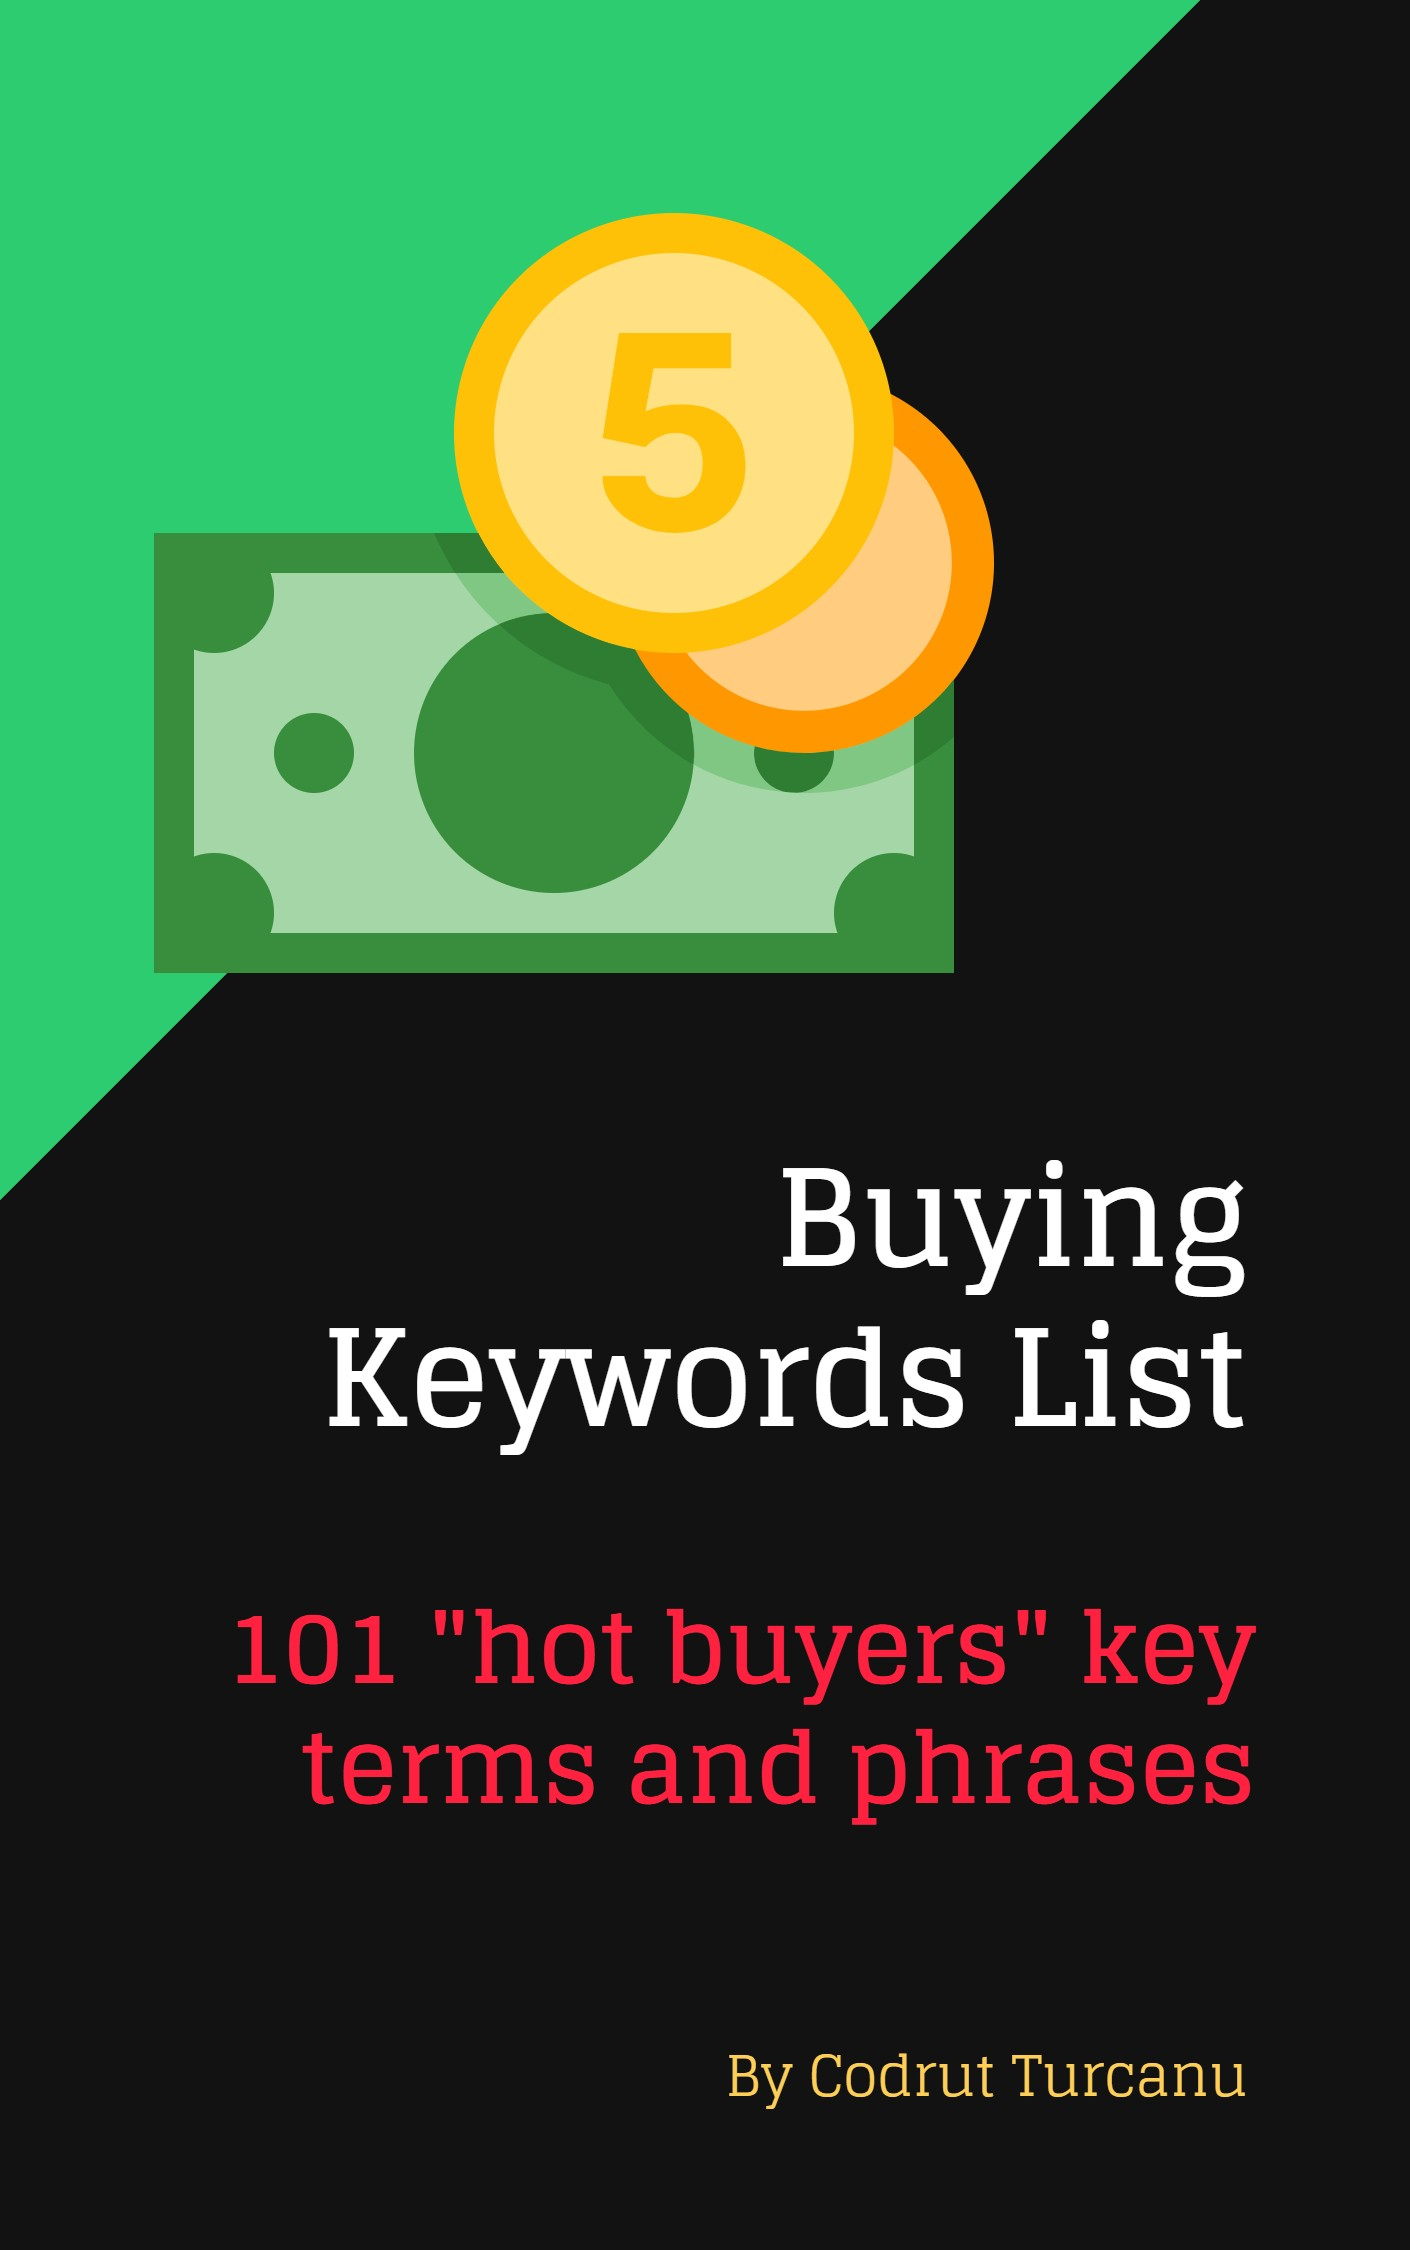 Buying Keywords List: 101 Key Terms and Phrases that Attract